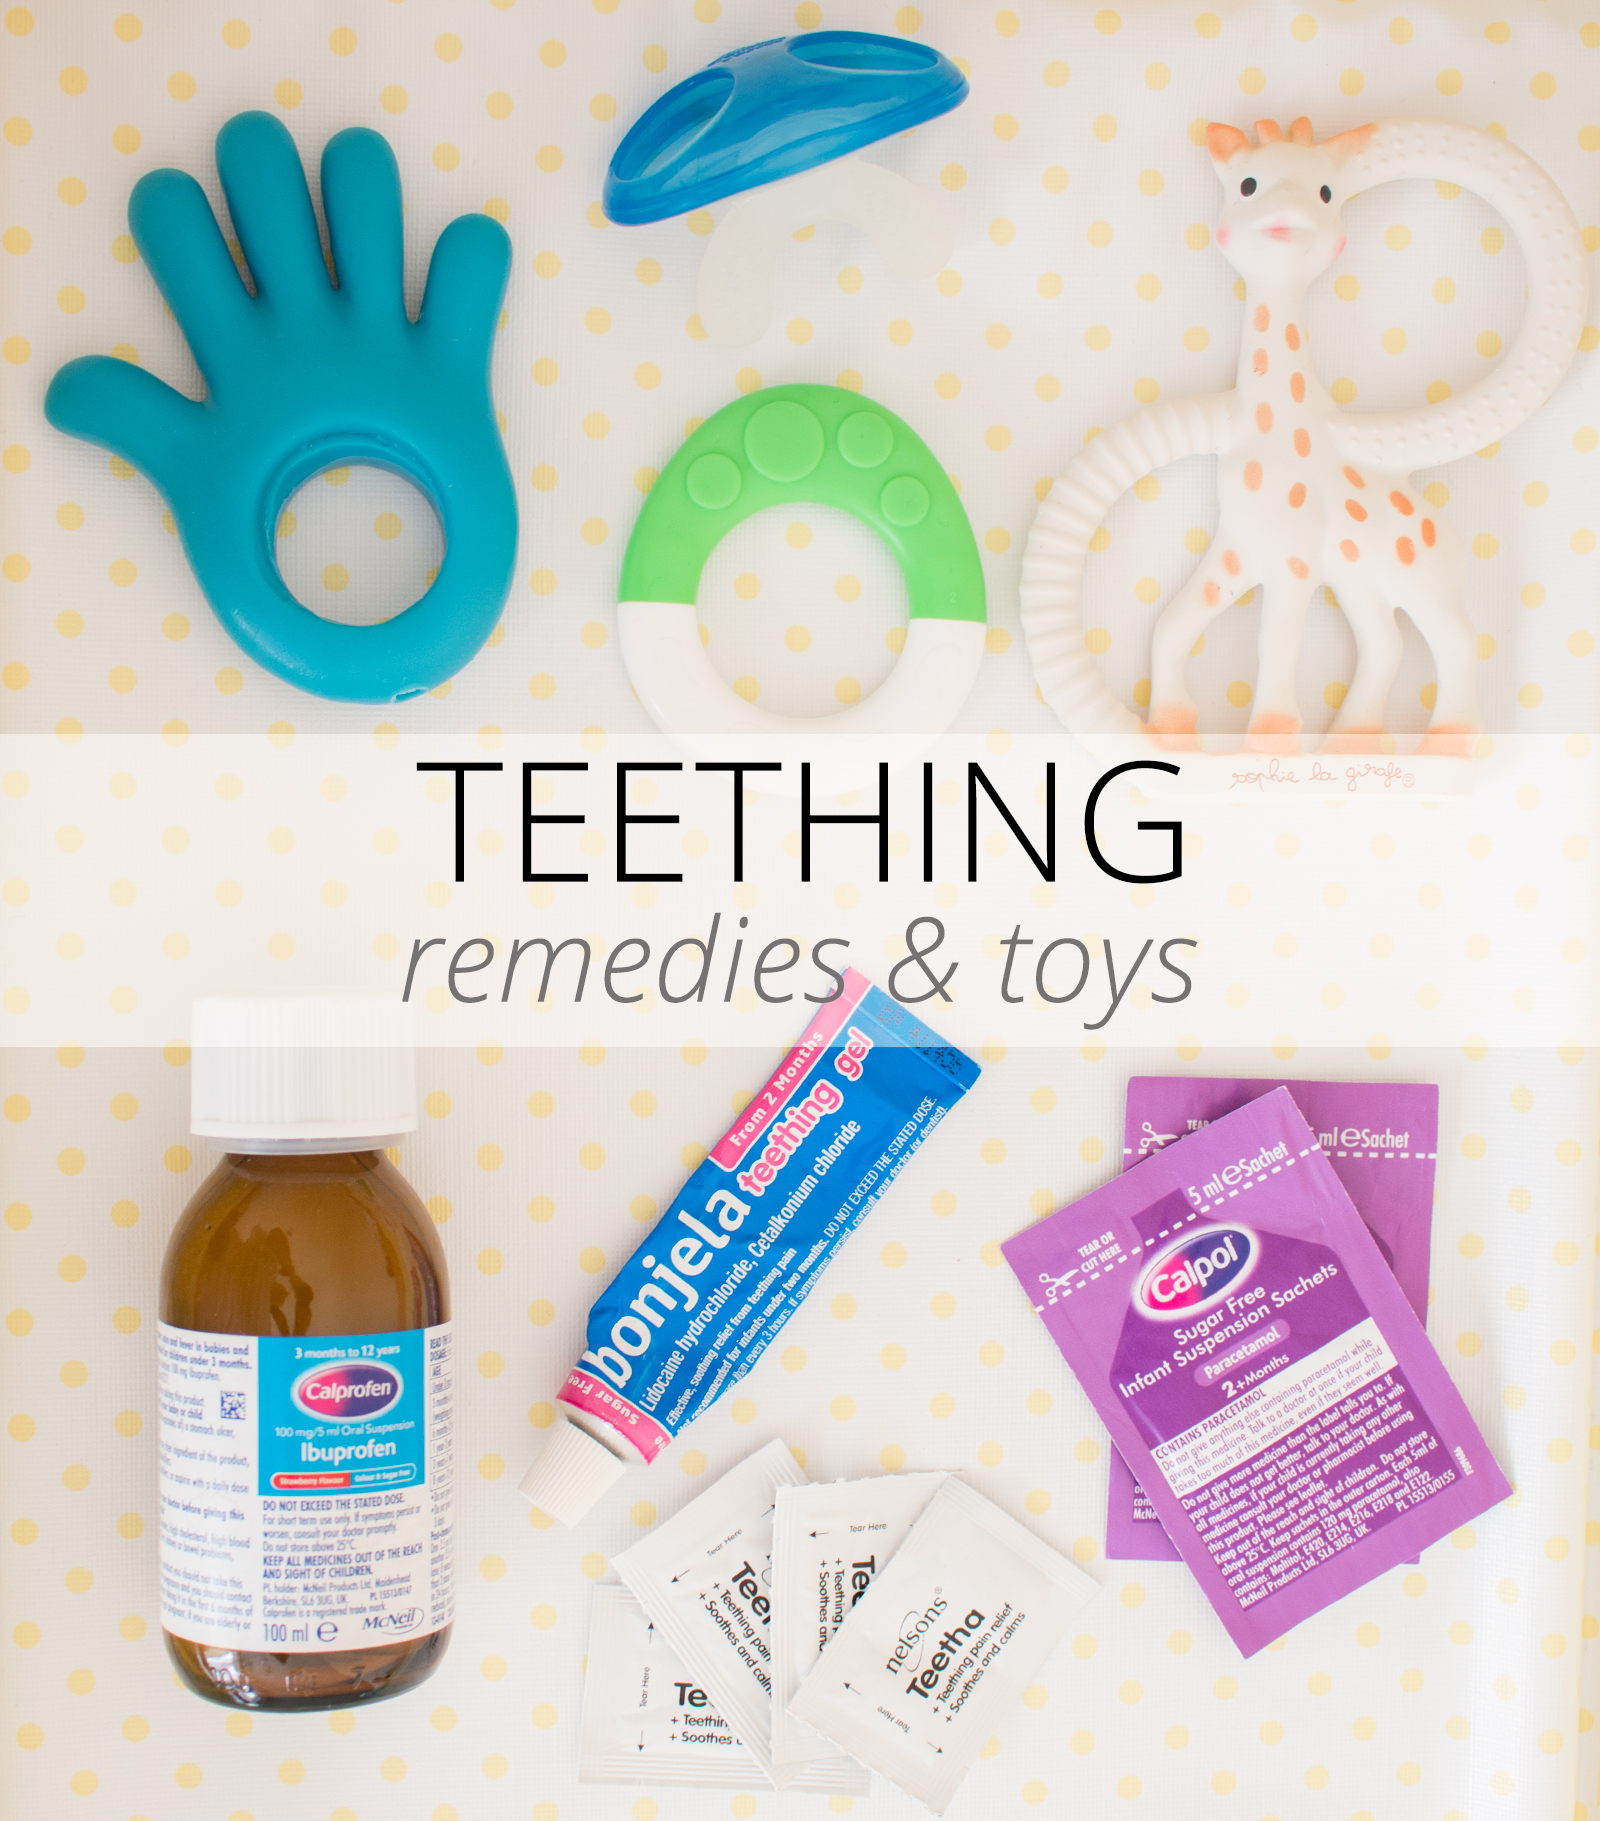 how to help a teething baby - toys & remedies